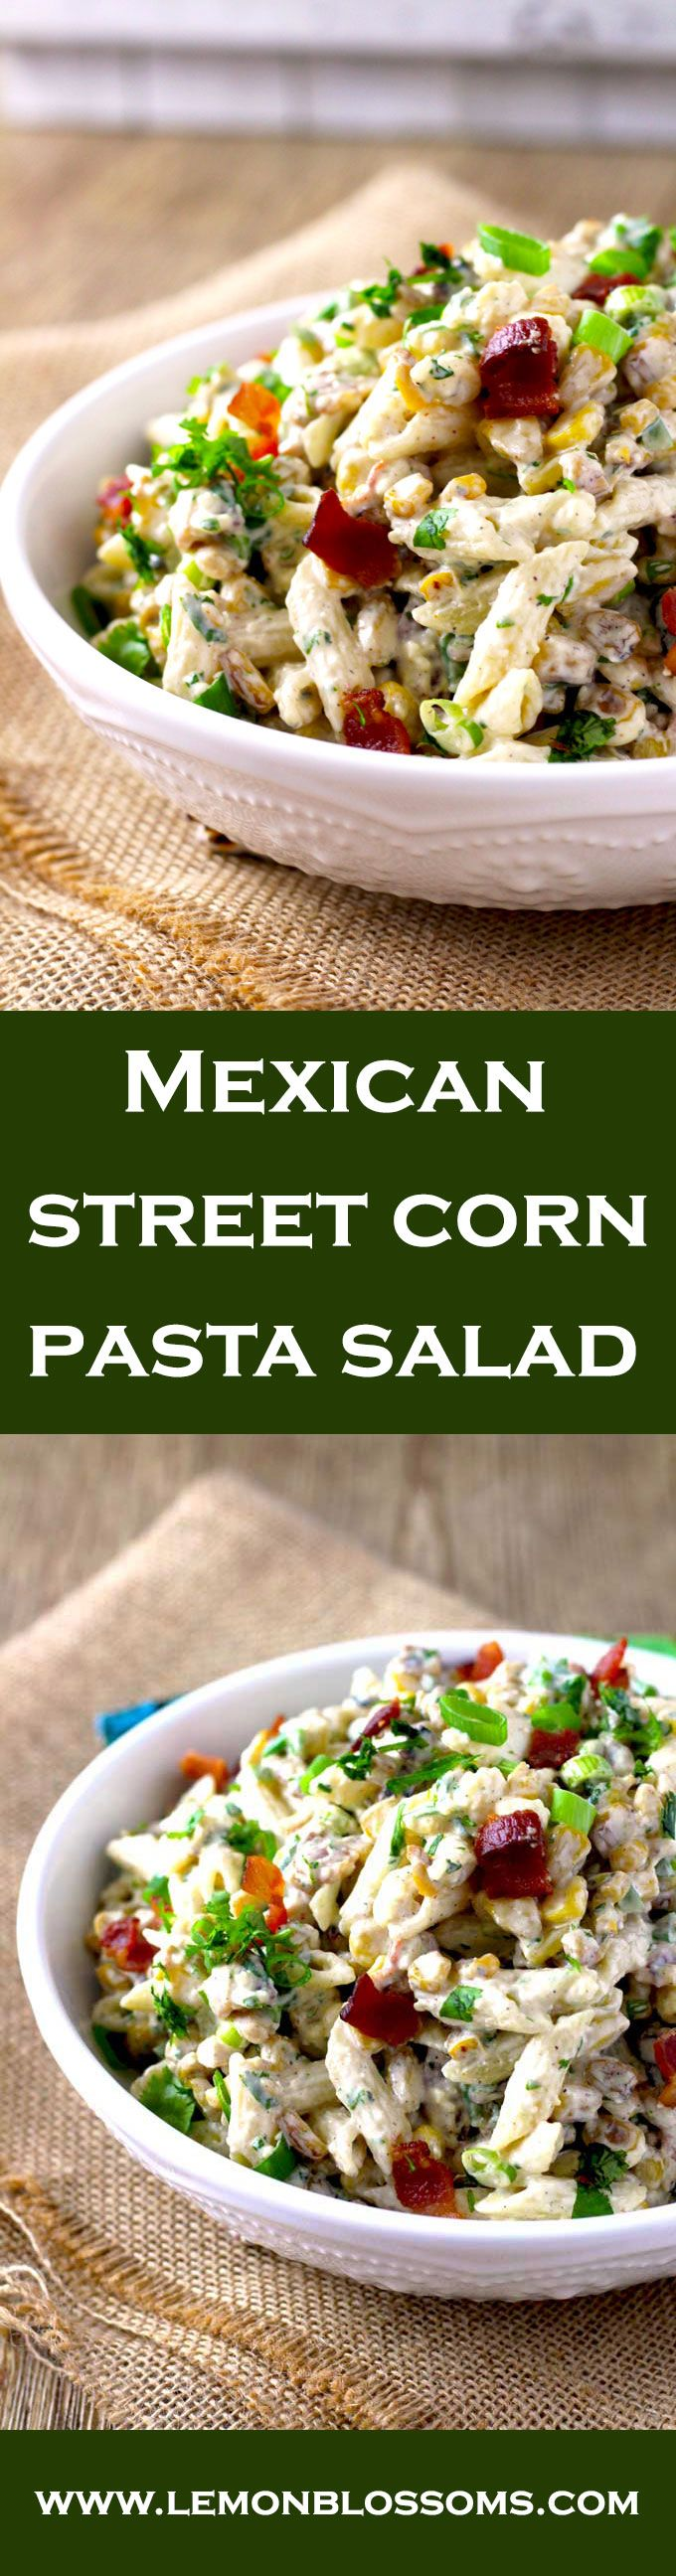 Perfectly charred corn is the star of this Mexican Street Corn Pasta Salad. Tossed in a creamy chili-lime cilantro dressing with Cotija cheese and crumbled bacon. Easy to make, super flavorful and  the ideal dish to make for your next gathering. via @https://www.pinterest.com/lmnblossoms/